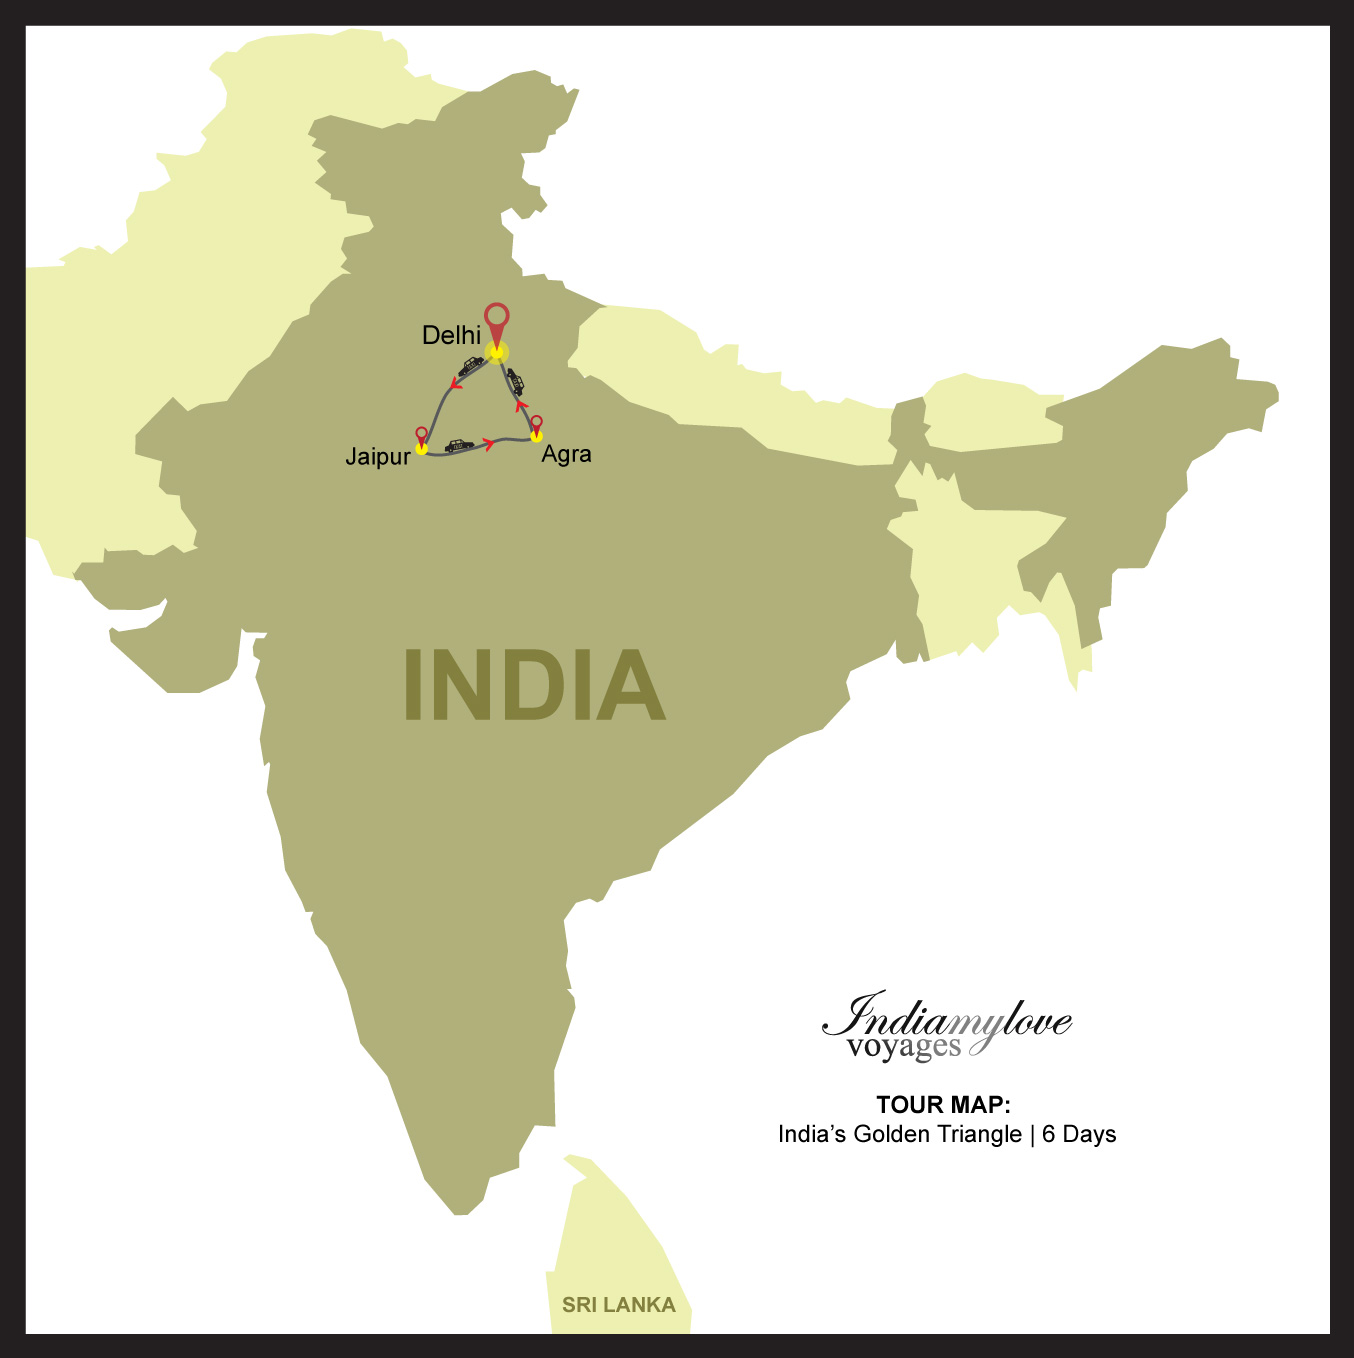 India S Golden Triangle India My Love Voyages